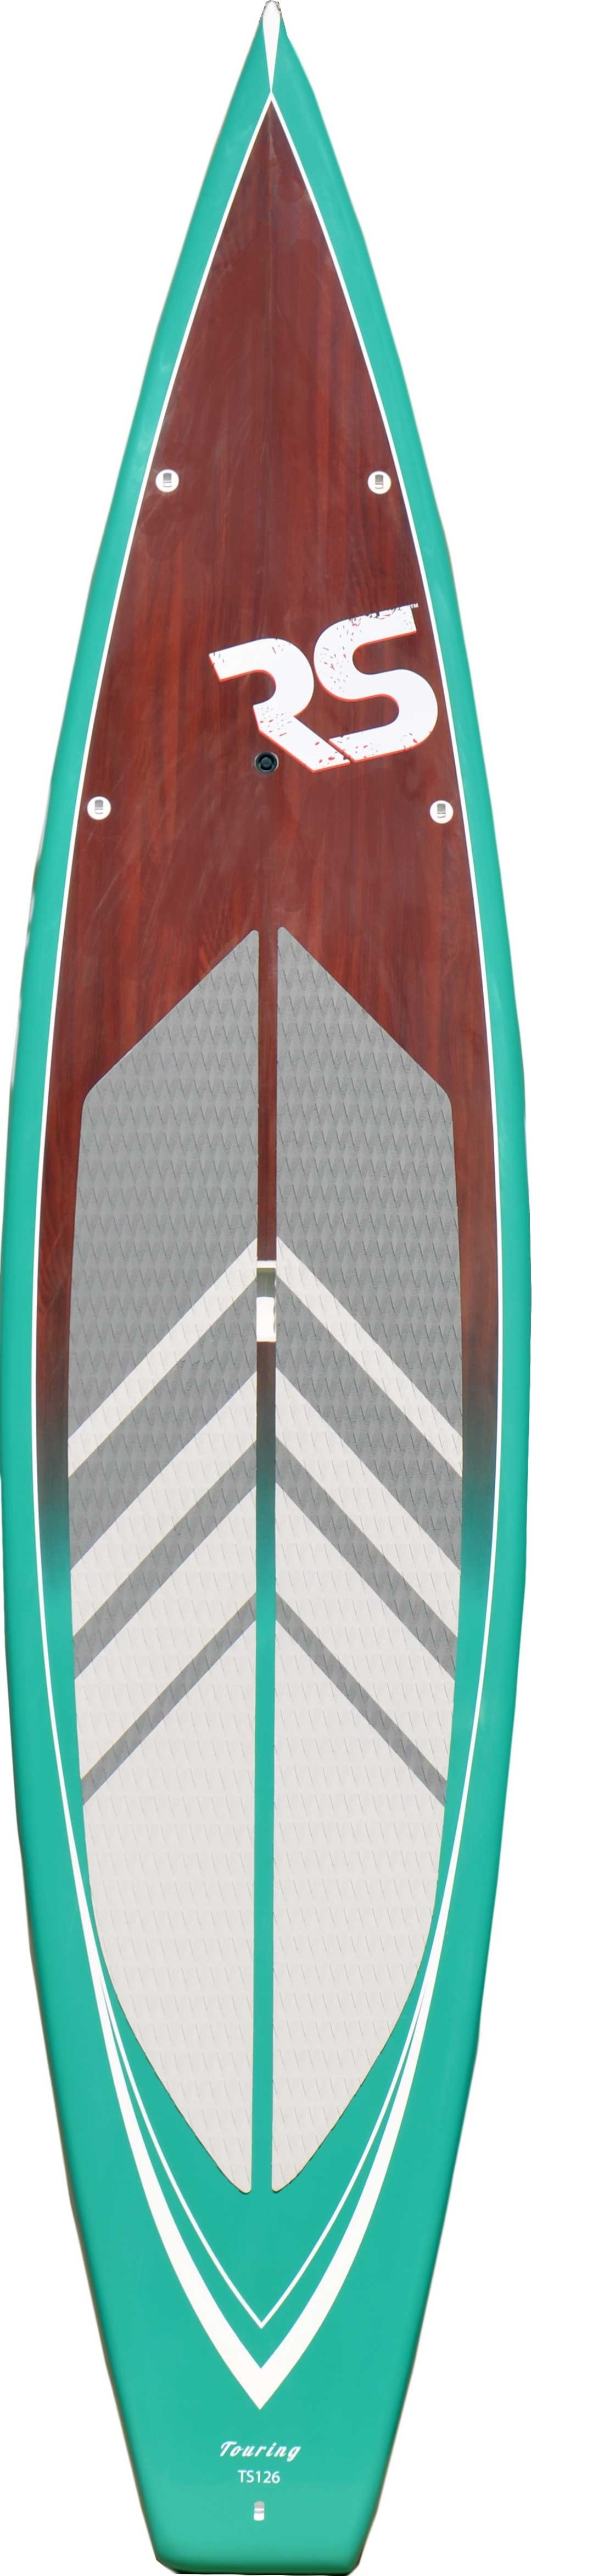 "Rave Sports 02701 Touring 12'6"" Fiberglass Emerald Stand Up Paddle Board by Overstock"